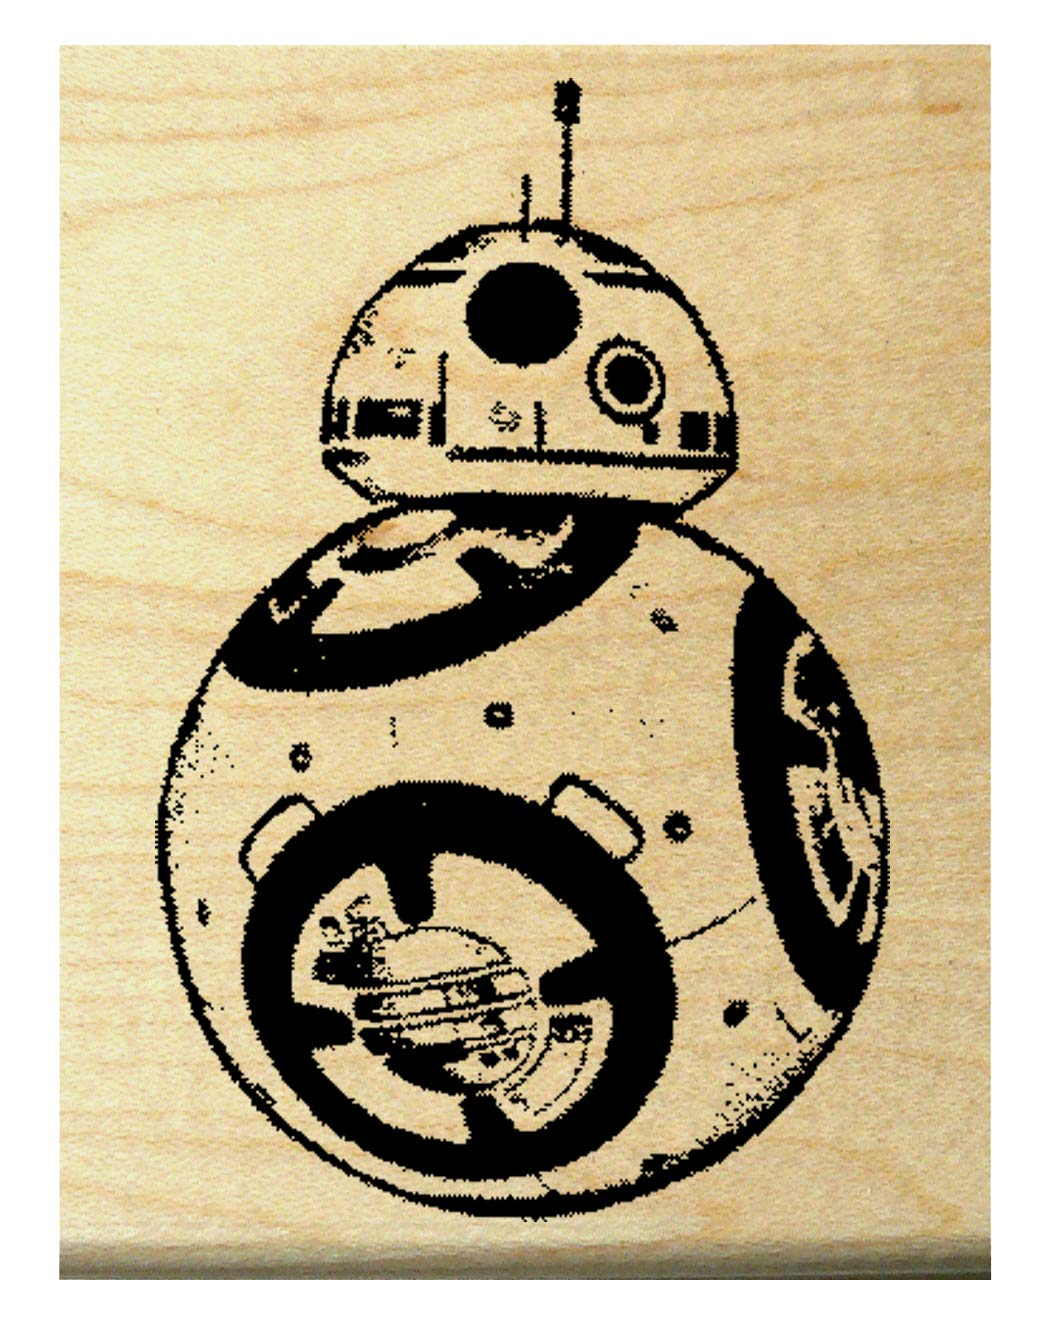 P93 BB8 robot rubber stamp 1.5x1